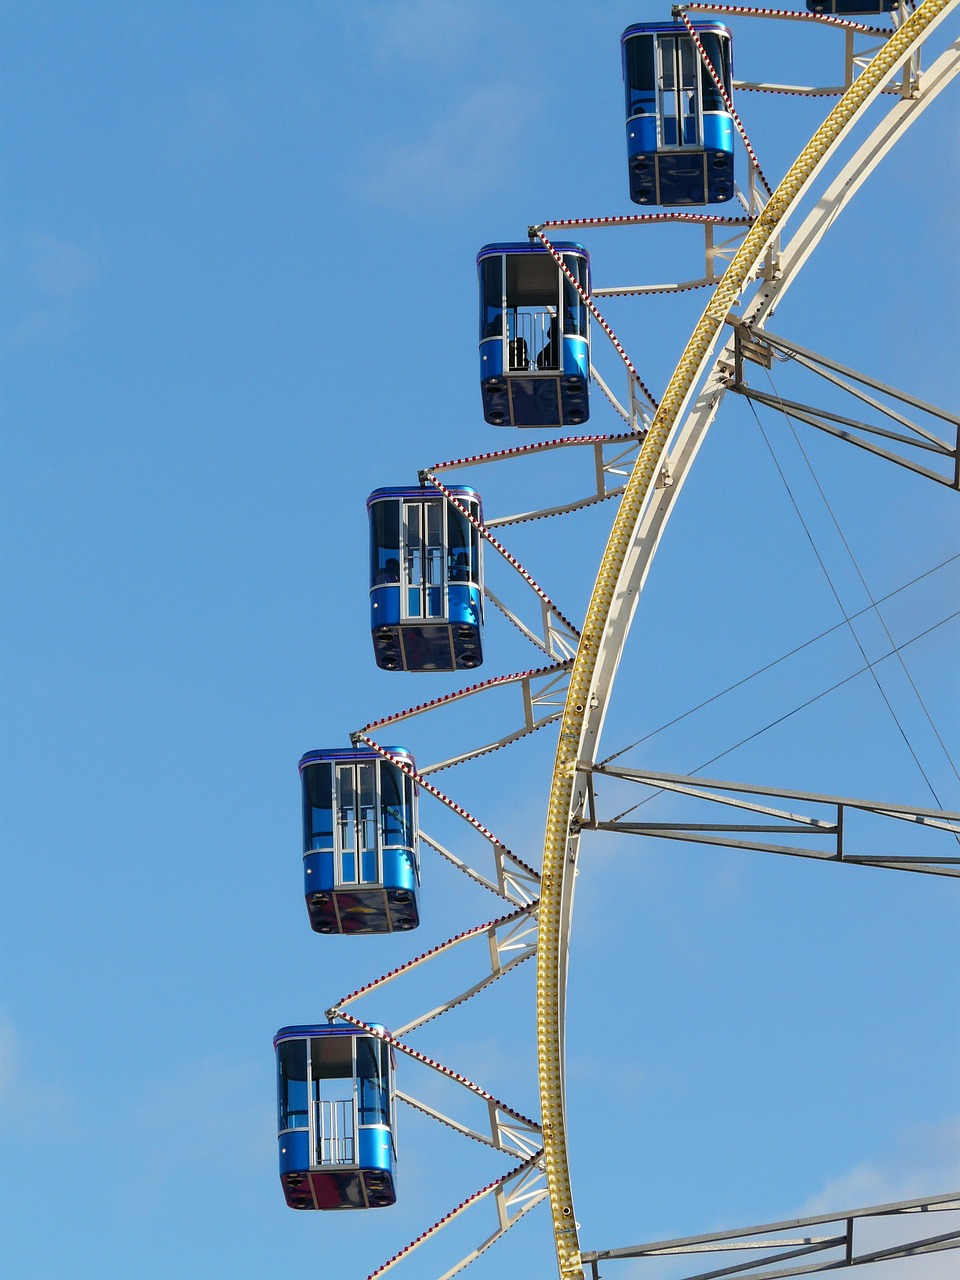 gondolas ferris wheel blue free photo